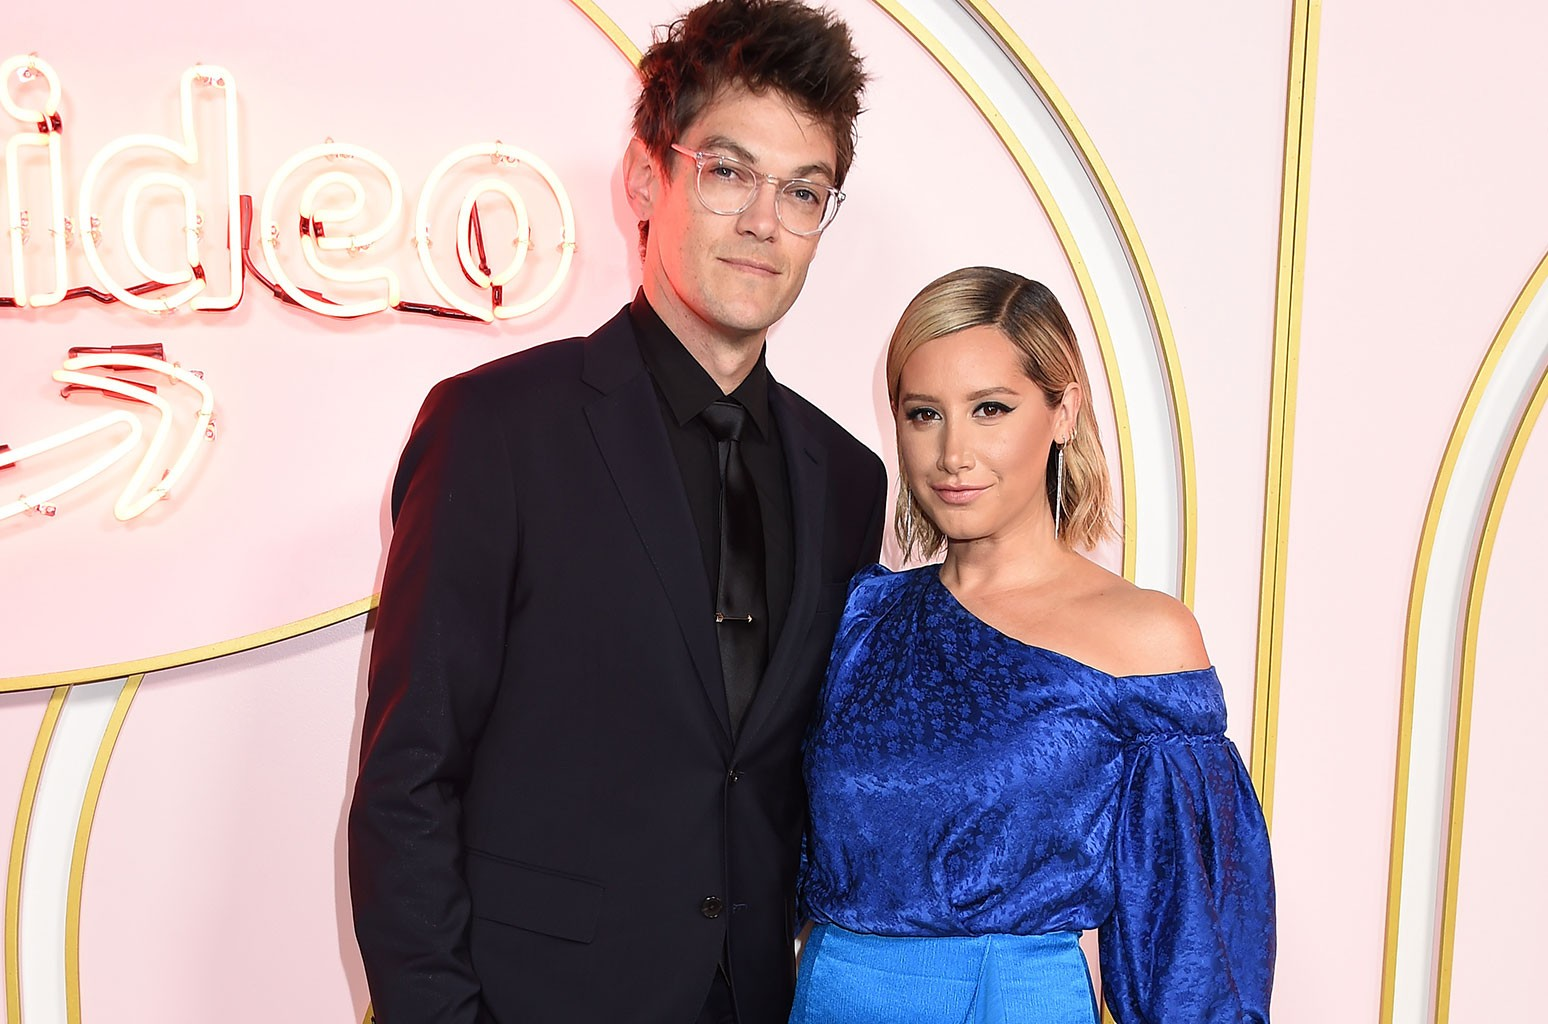 Ashley Tisdale Gives Birth to First Child With Christopher French: Baby Has 'Arrived Earth Side'